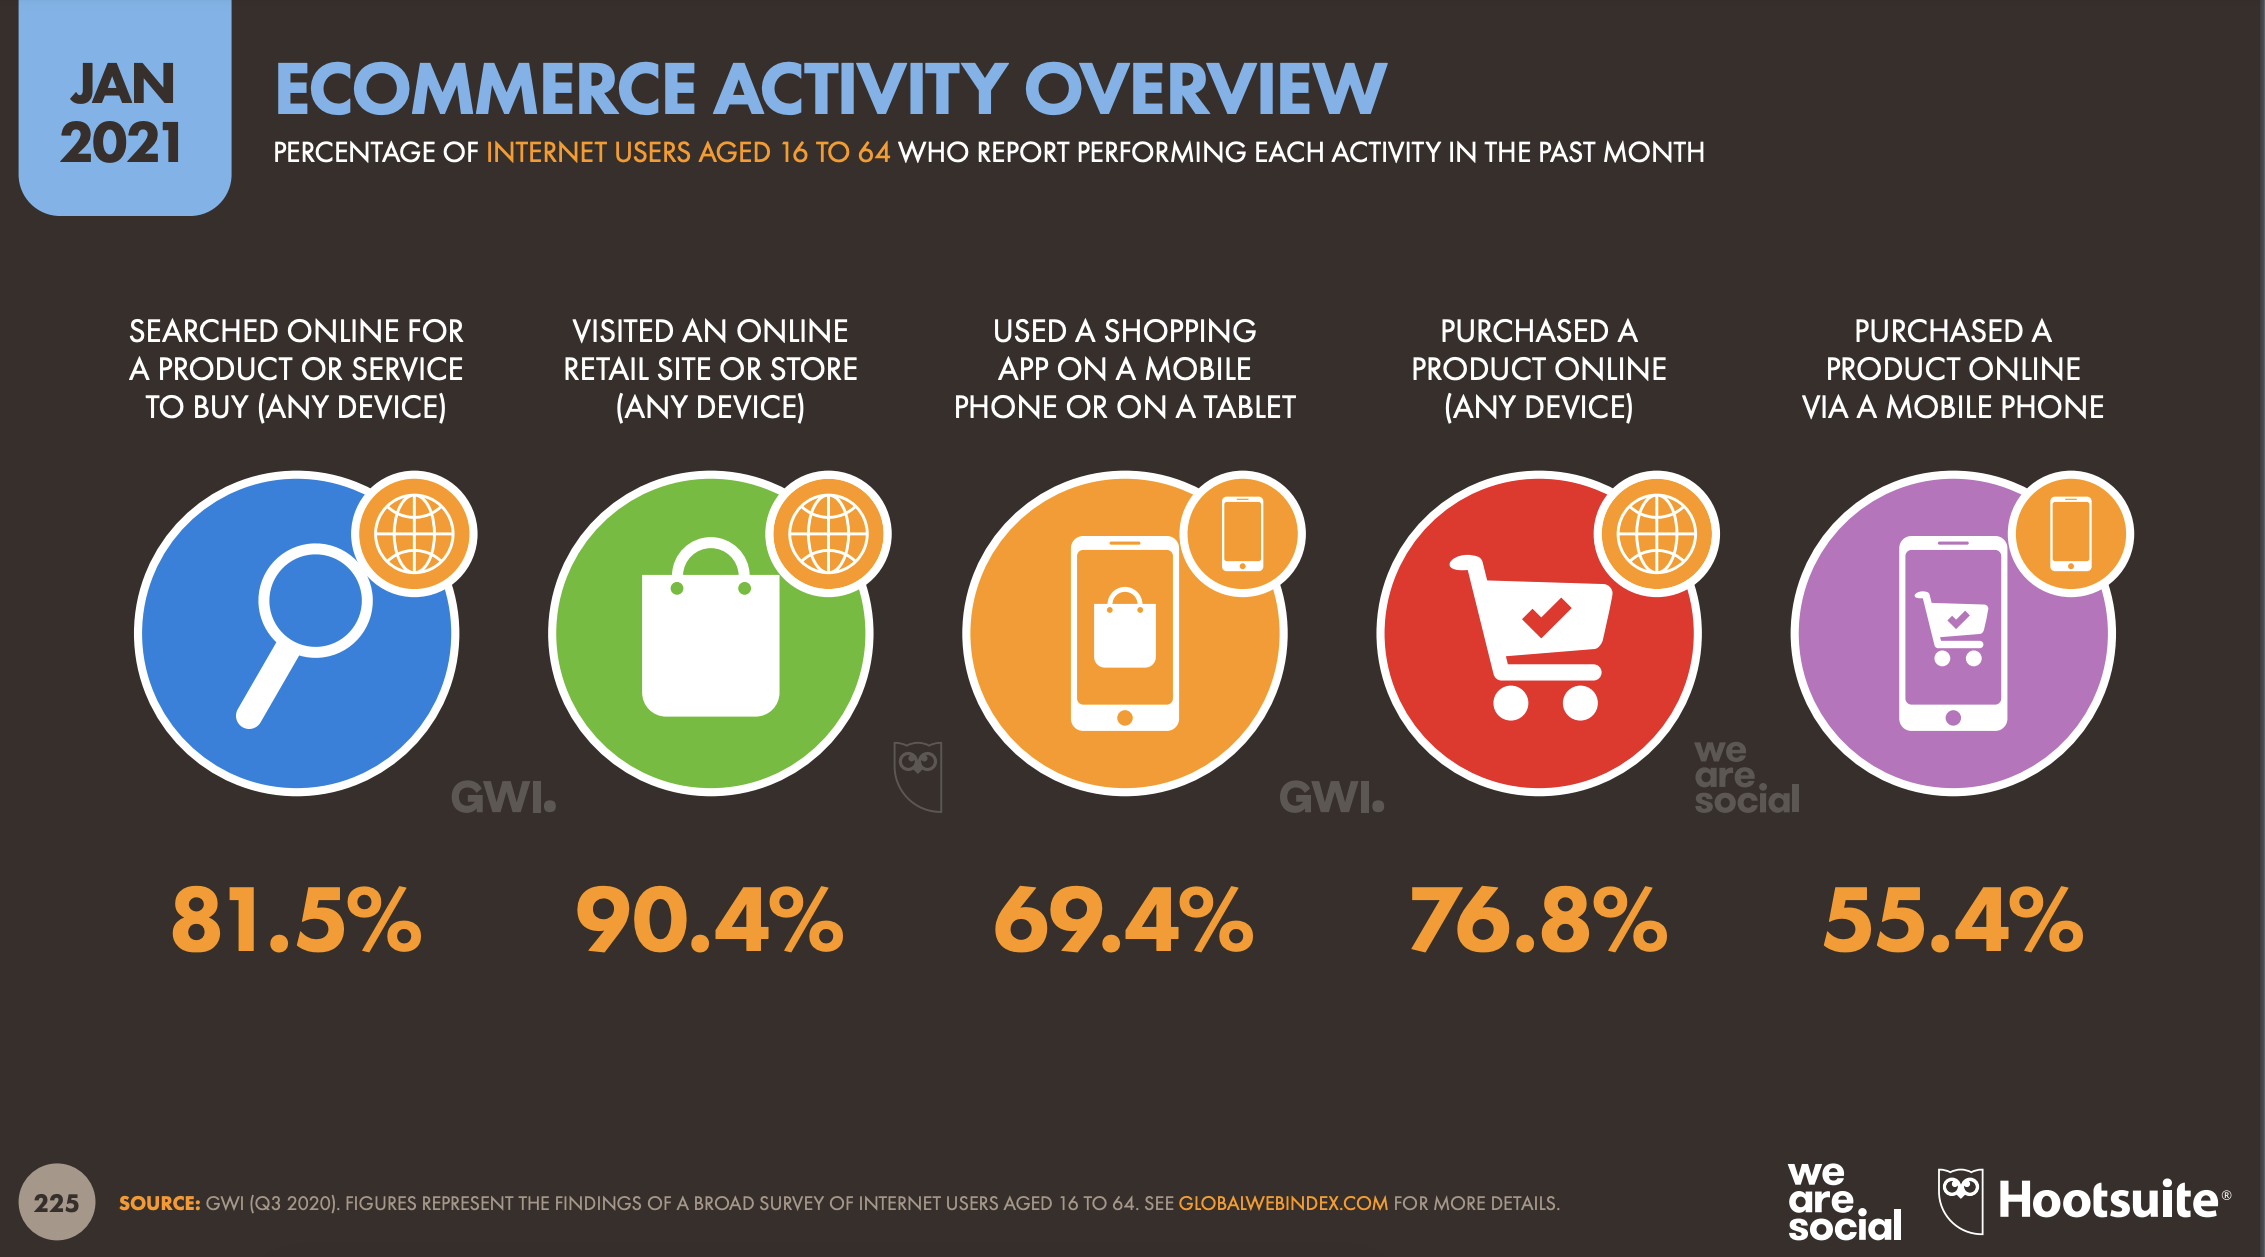 Ecommerce Activity Overview